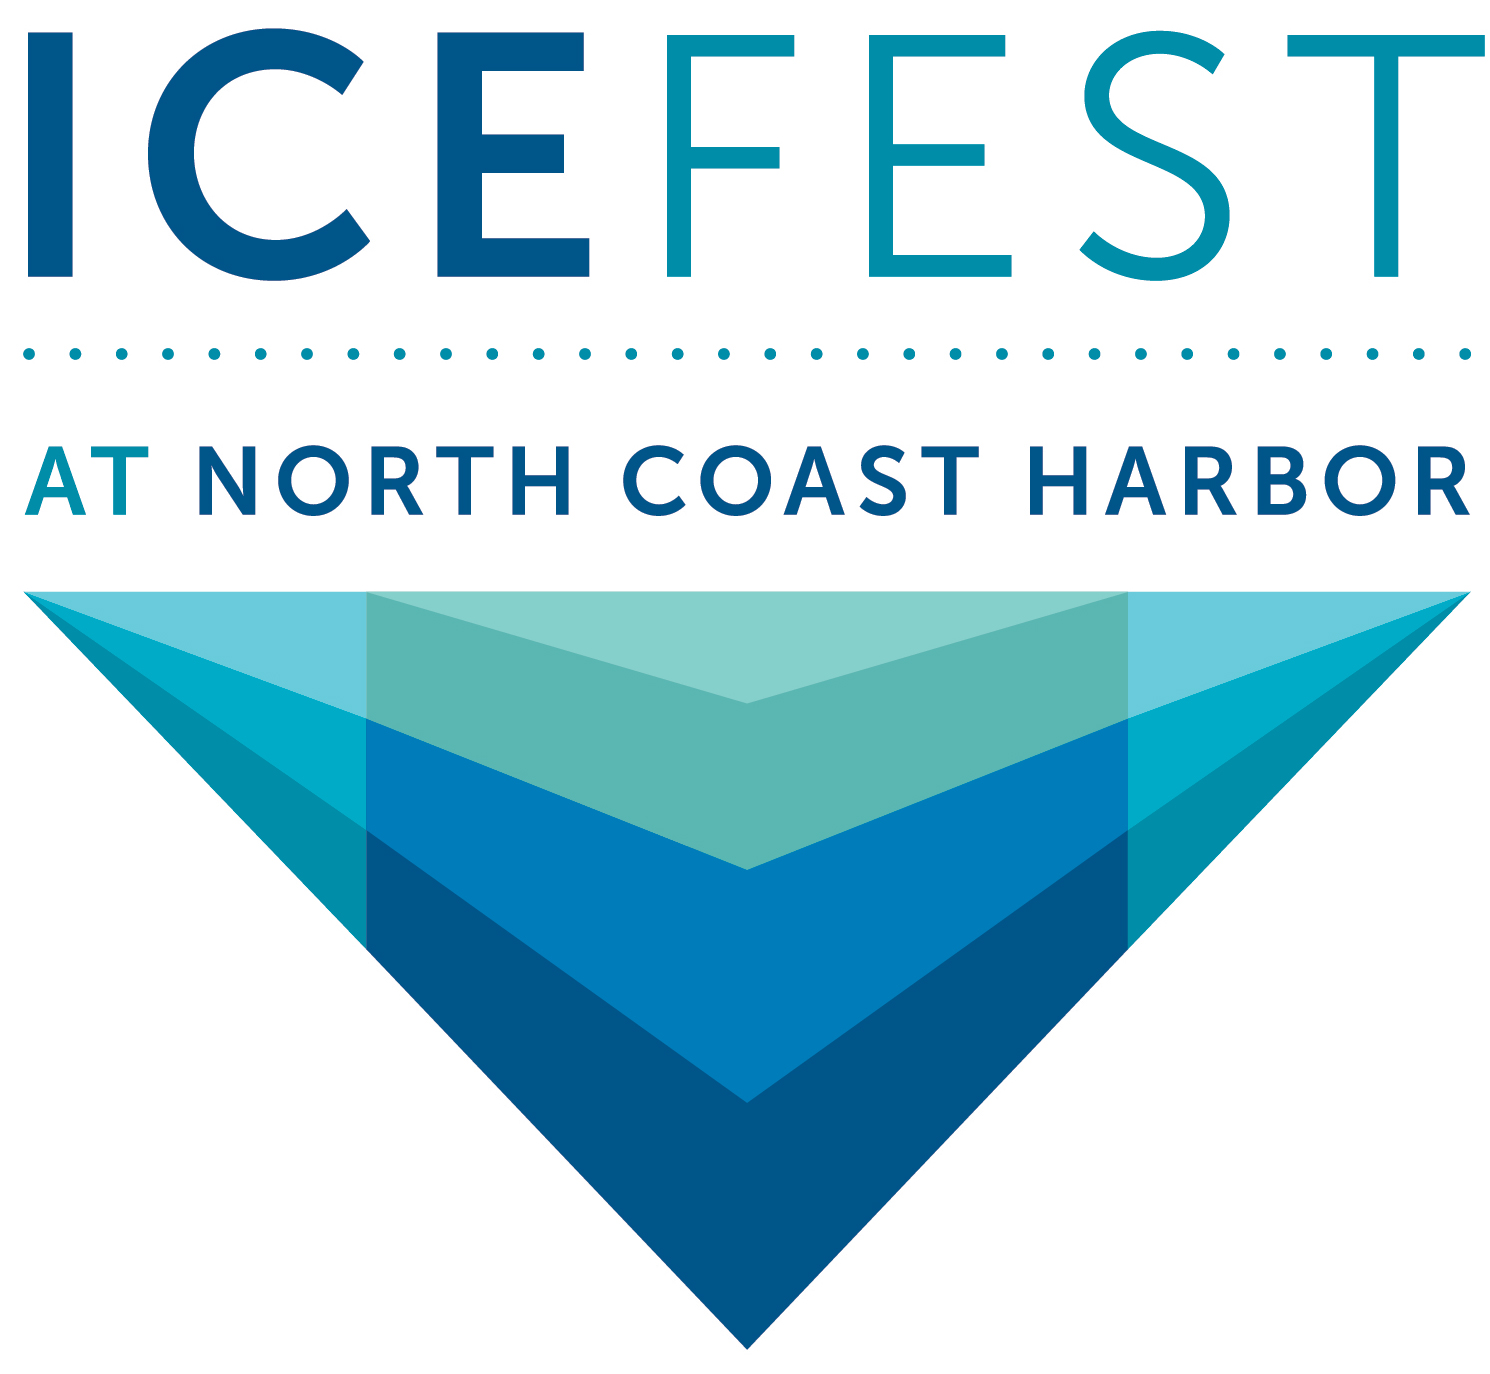 Ice Fest at North Coast Harbor